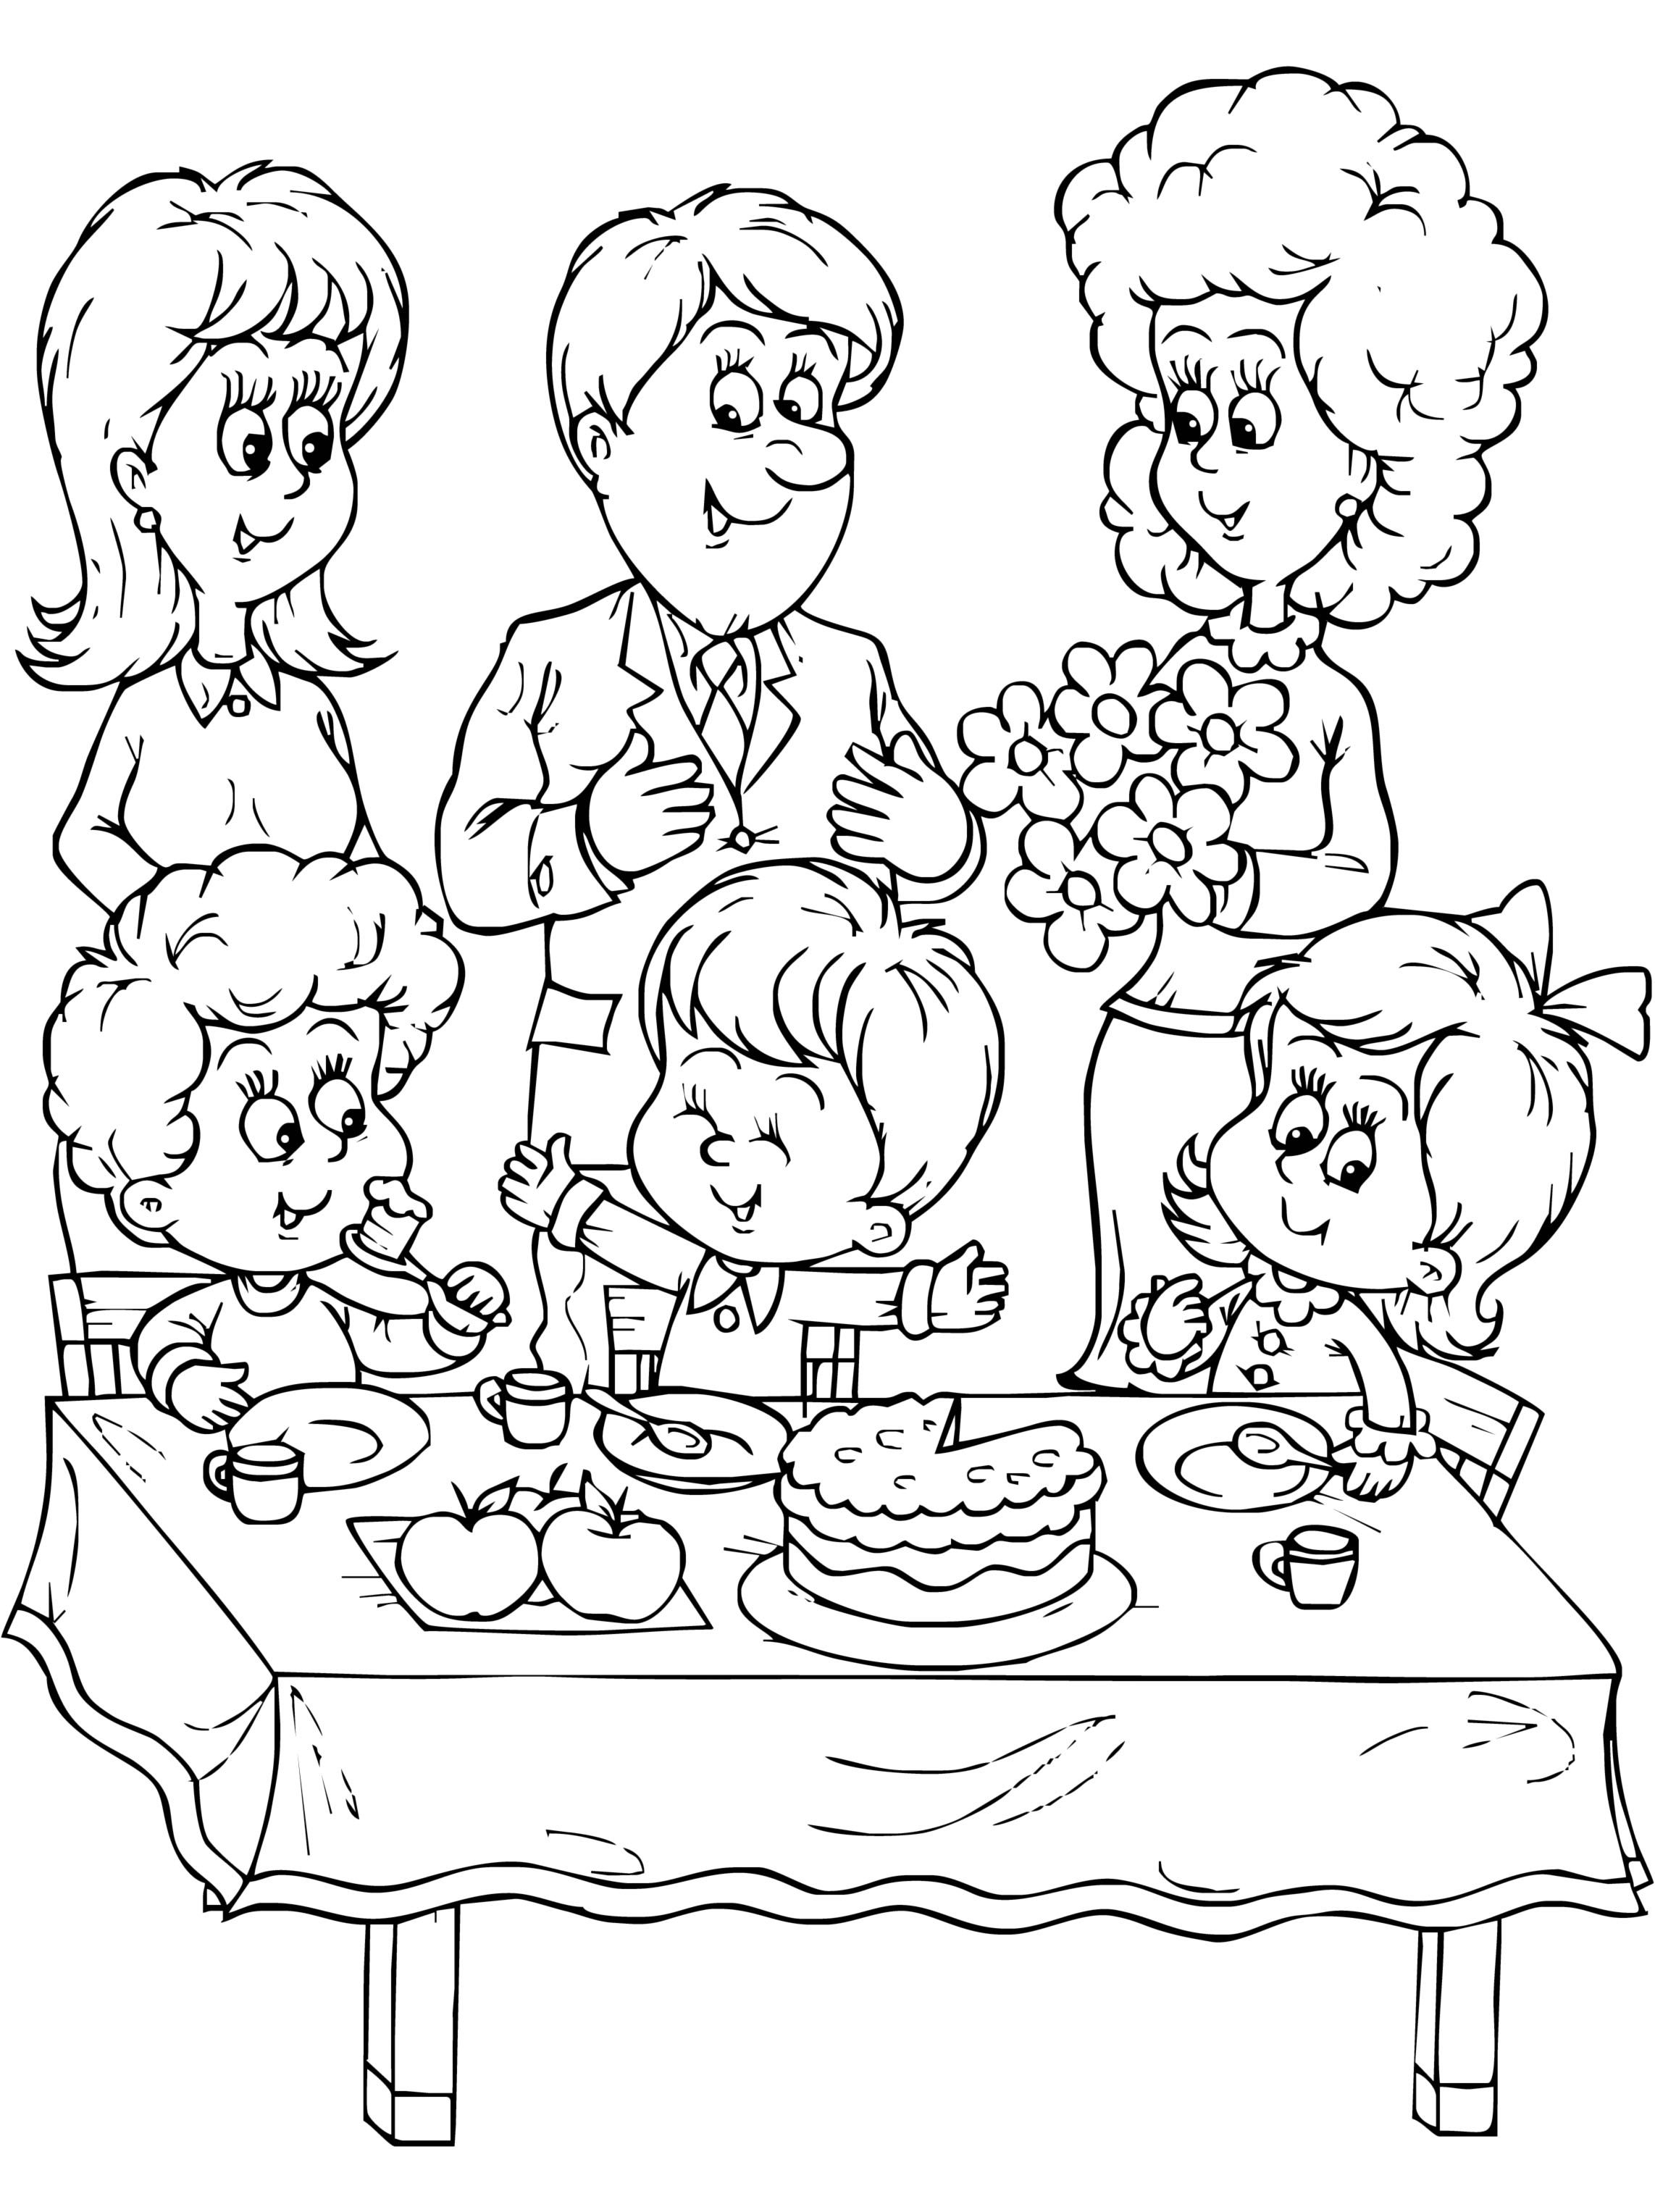 family clipart coloring free family picture coloring page download free clip art coloring family clipart